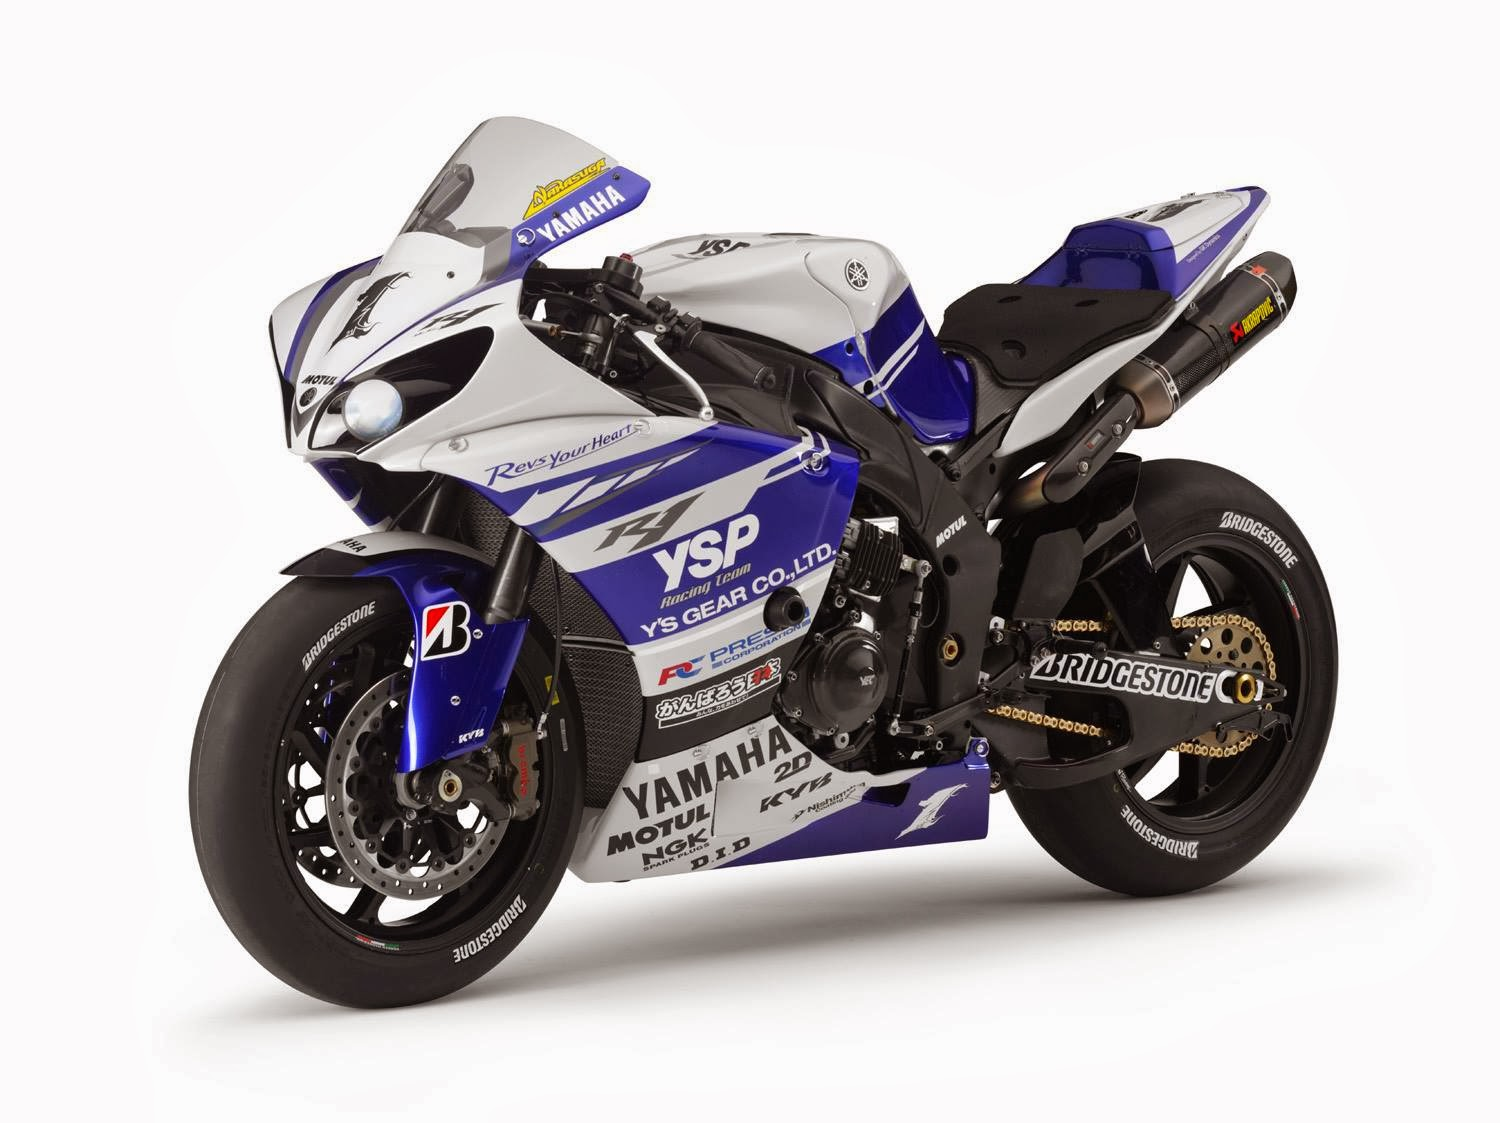 Planet japan blog all japan superbike yamaha yzf r1 k for Yamaha r1 2014